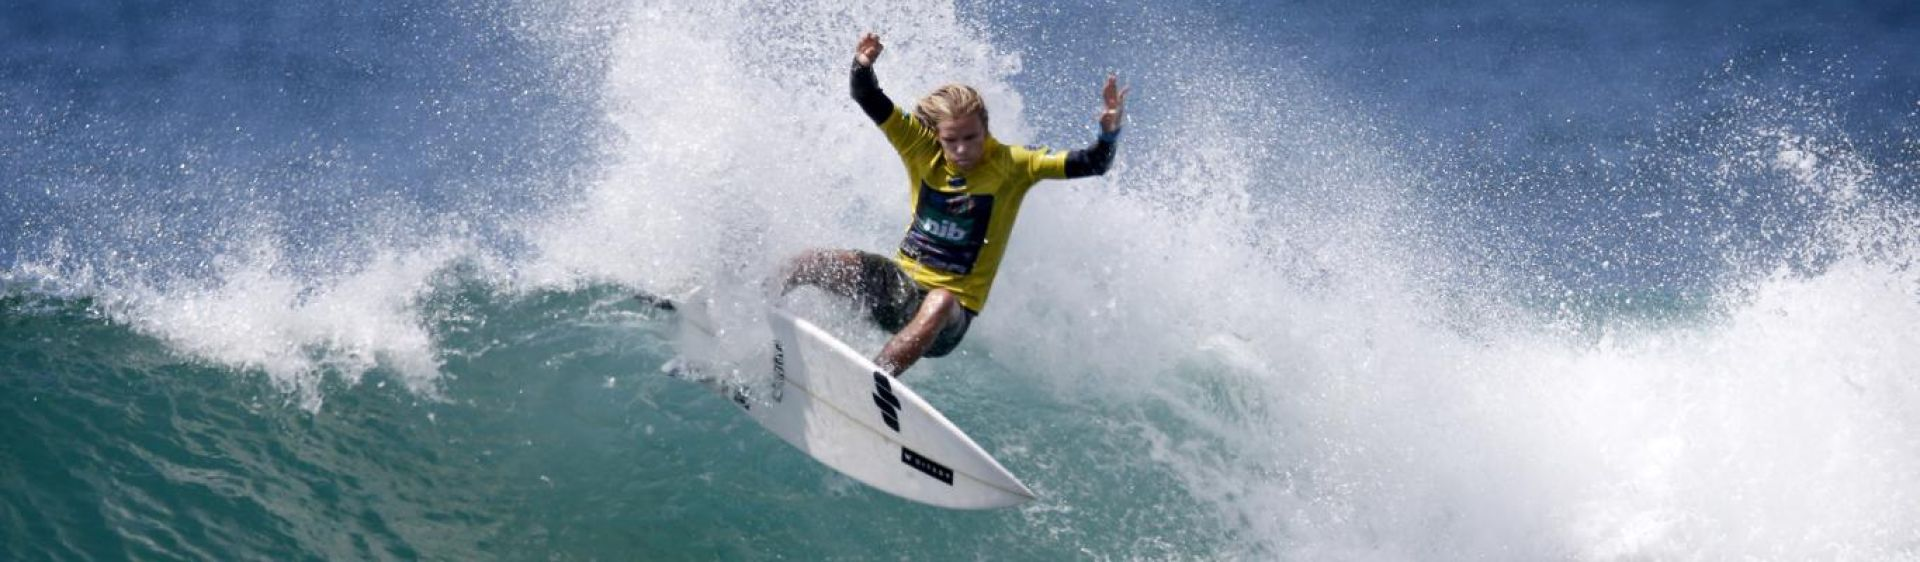 Best place to learn how to surf? - Australia Forum ...